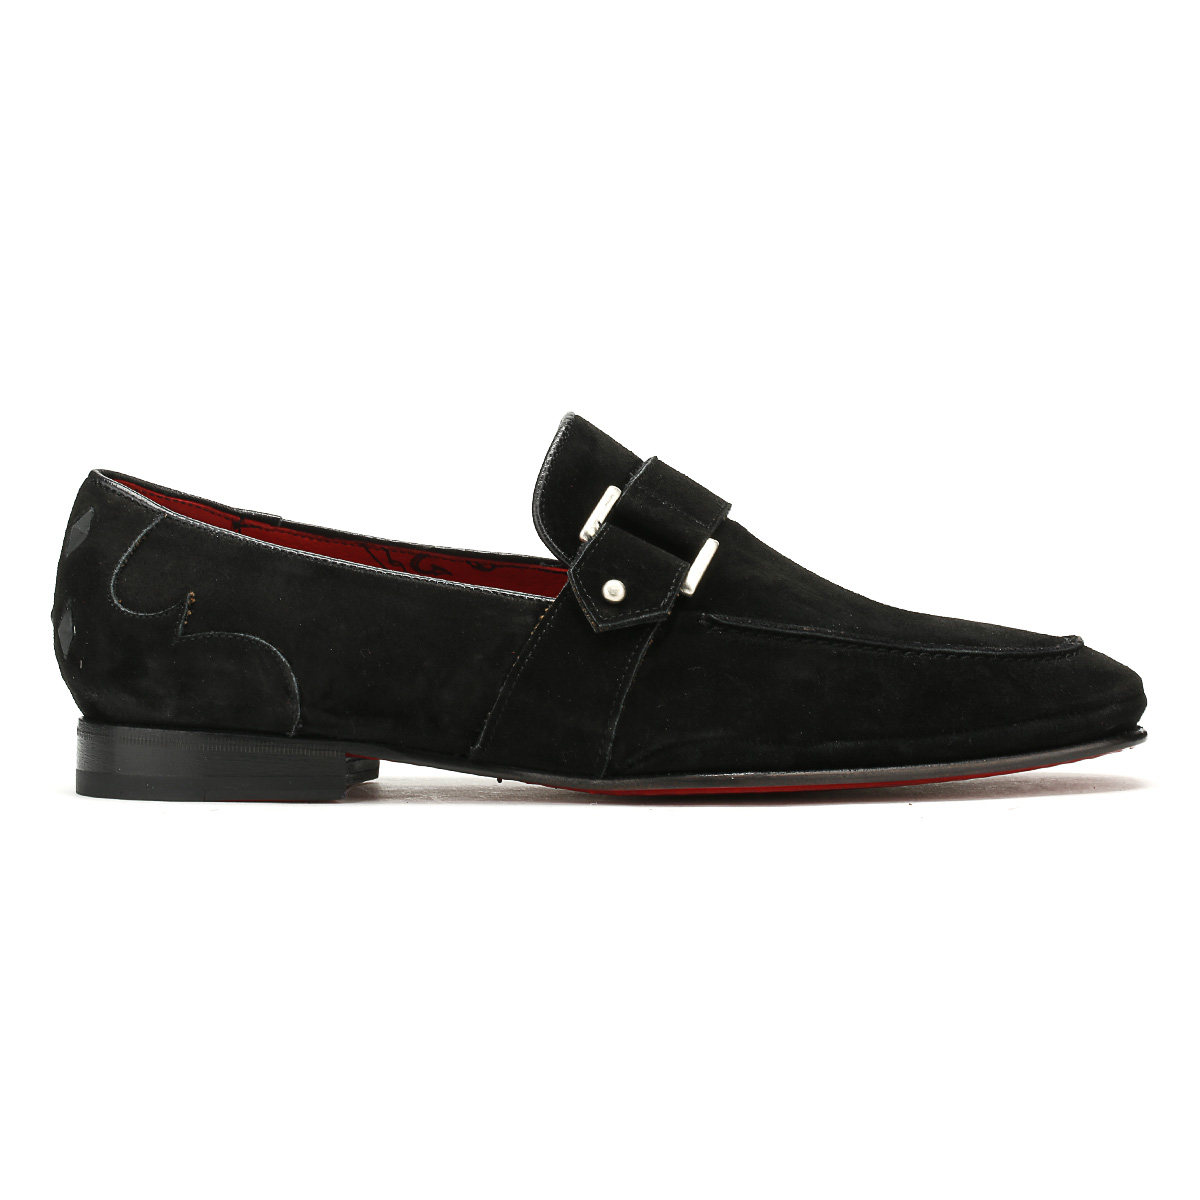 Jeffery West Mens Studded Loafers Croste Bovino schwarz Martini Moccasins Schuhes